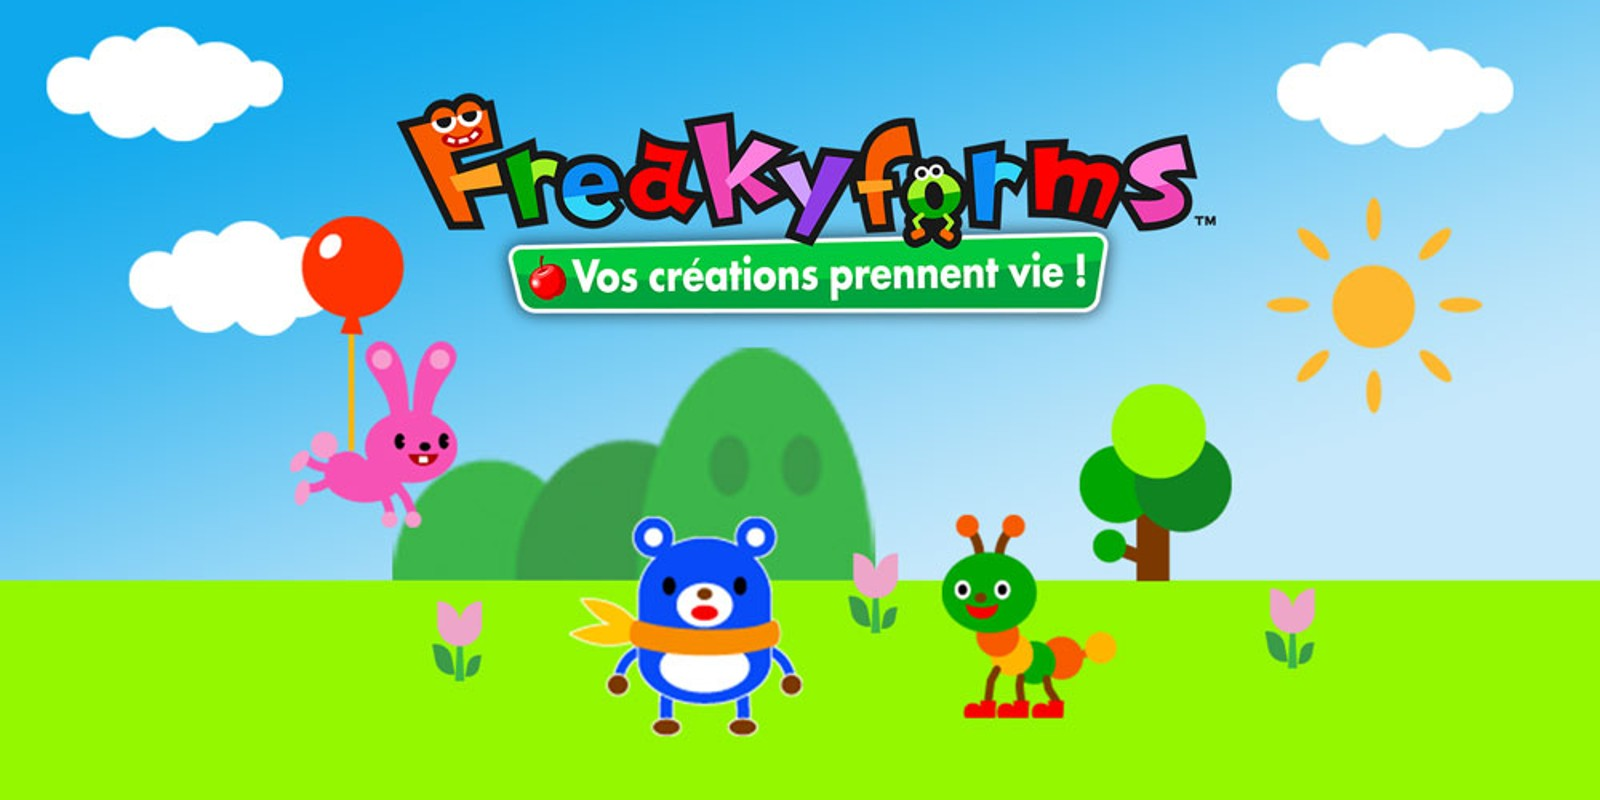 Freakyforms : Vos créations prennent vie !